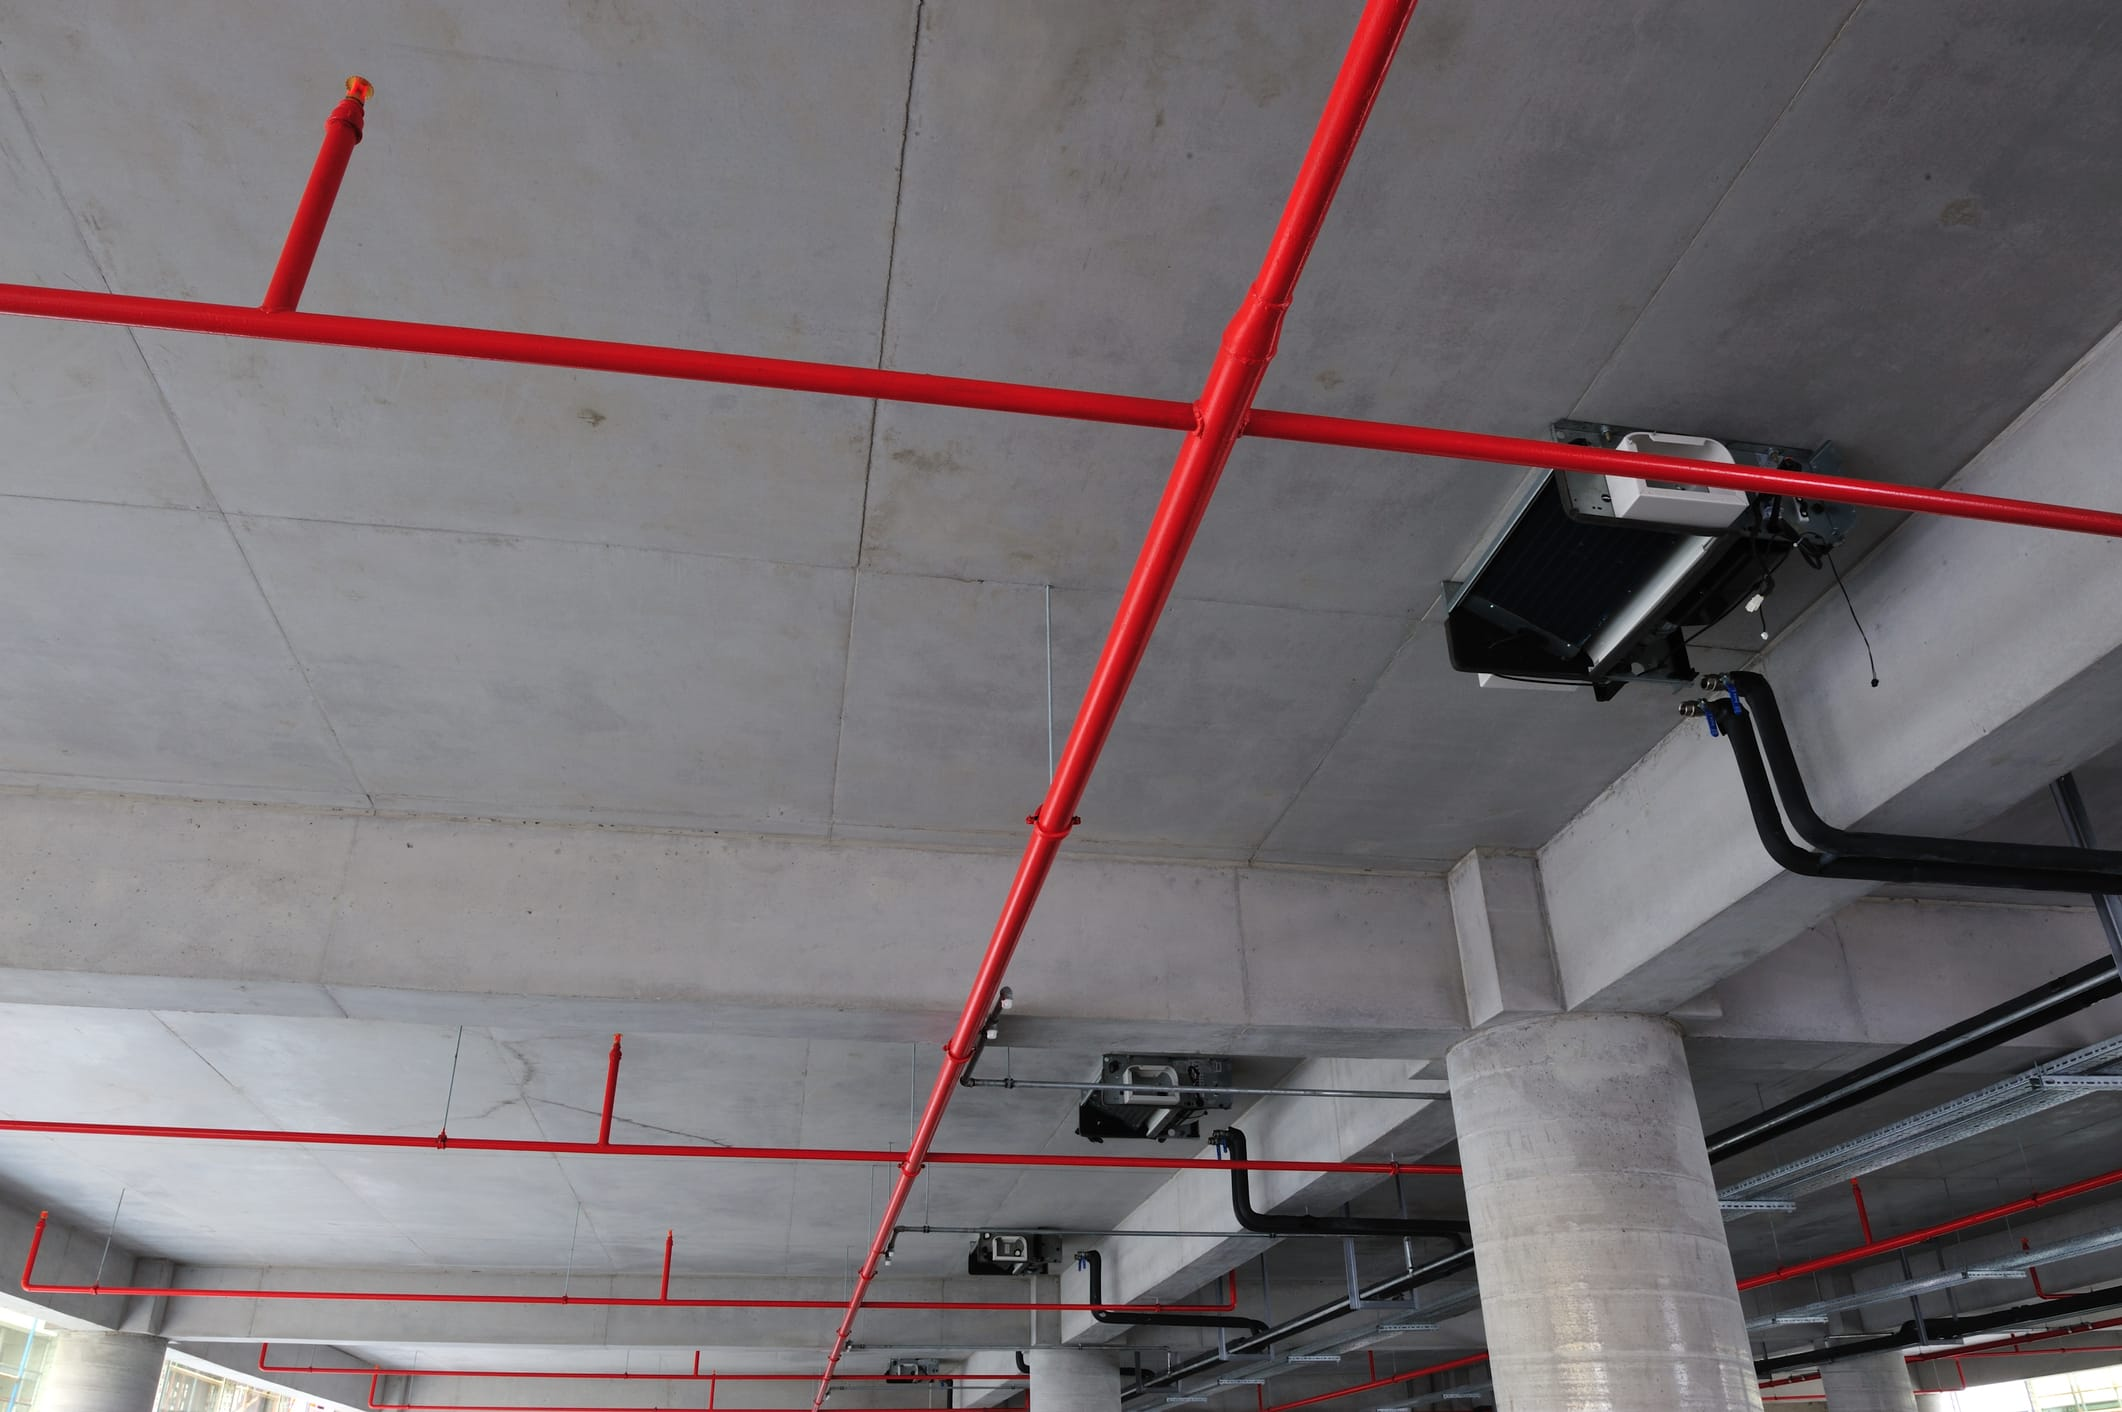 Fire Suppression Systems: What Are the Main Types, How Do They Work? - Fraker Fire